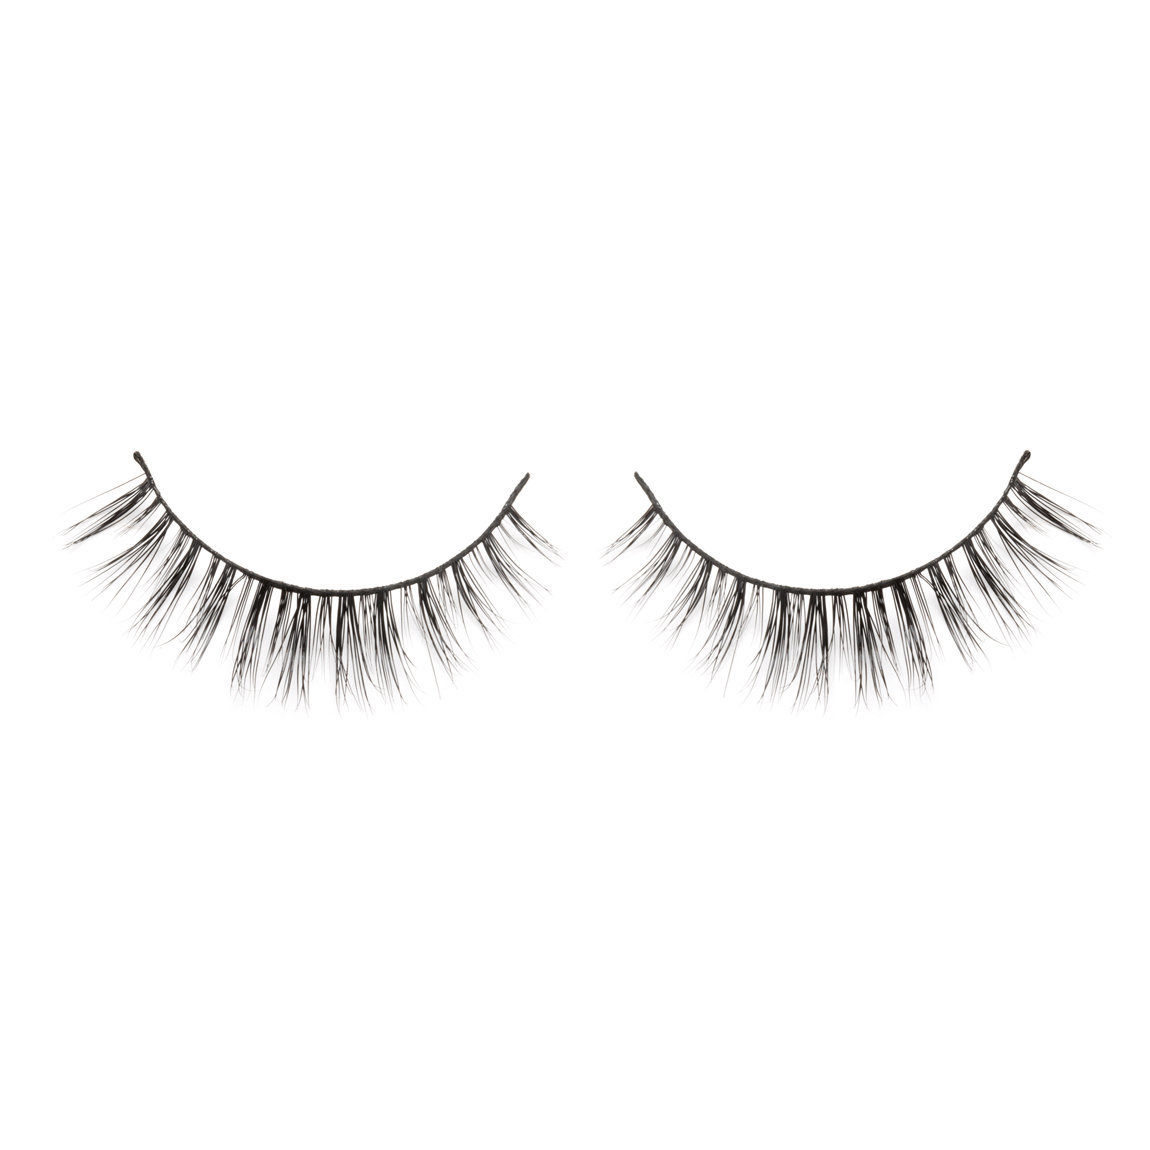 VELOUR BEAUTY | Lashes - Are Those Real?